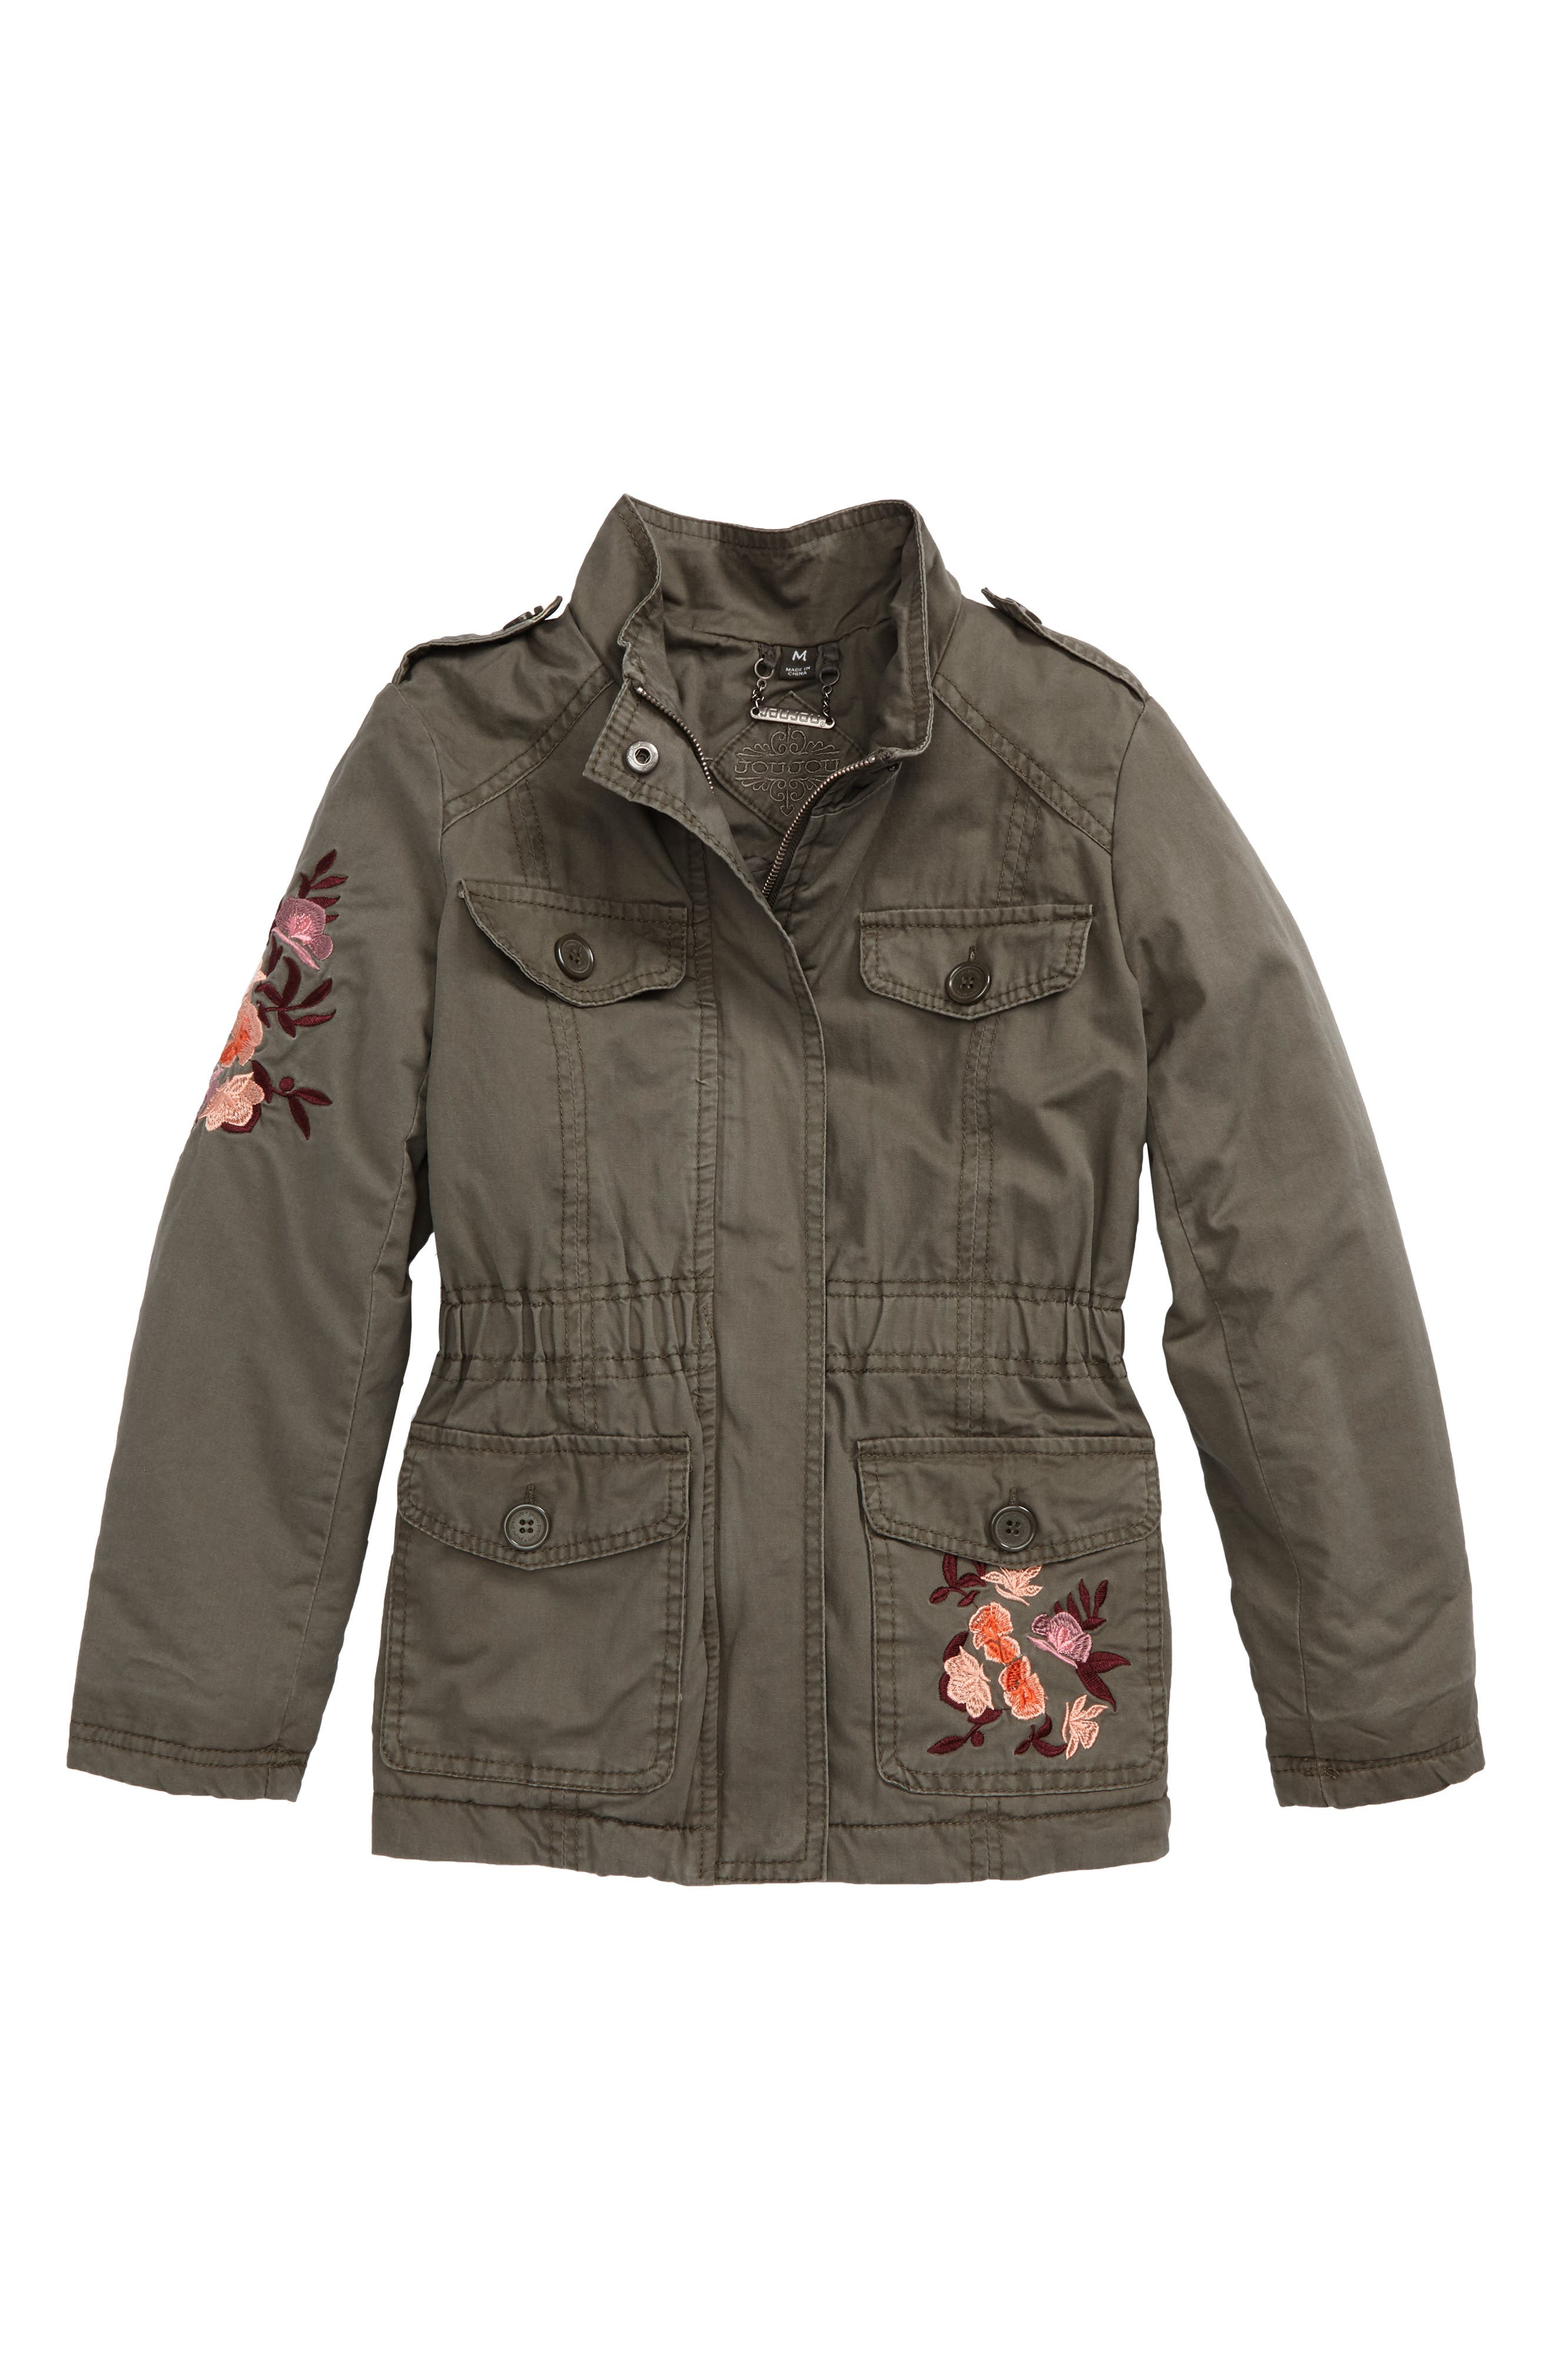 Embroidered Utility Jacket,                             Main thumbnail 1, color,                             303